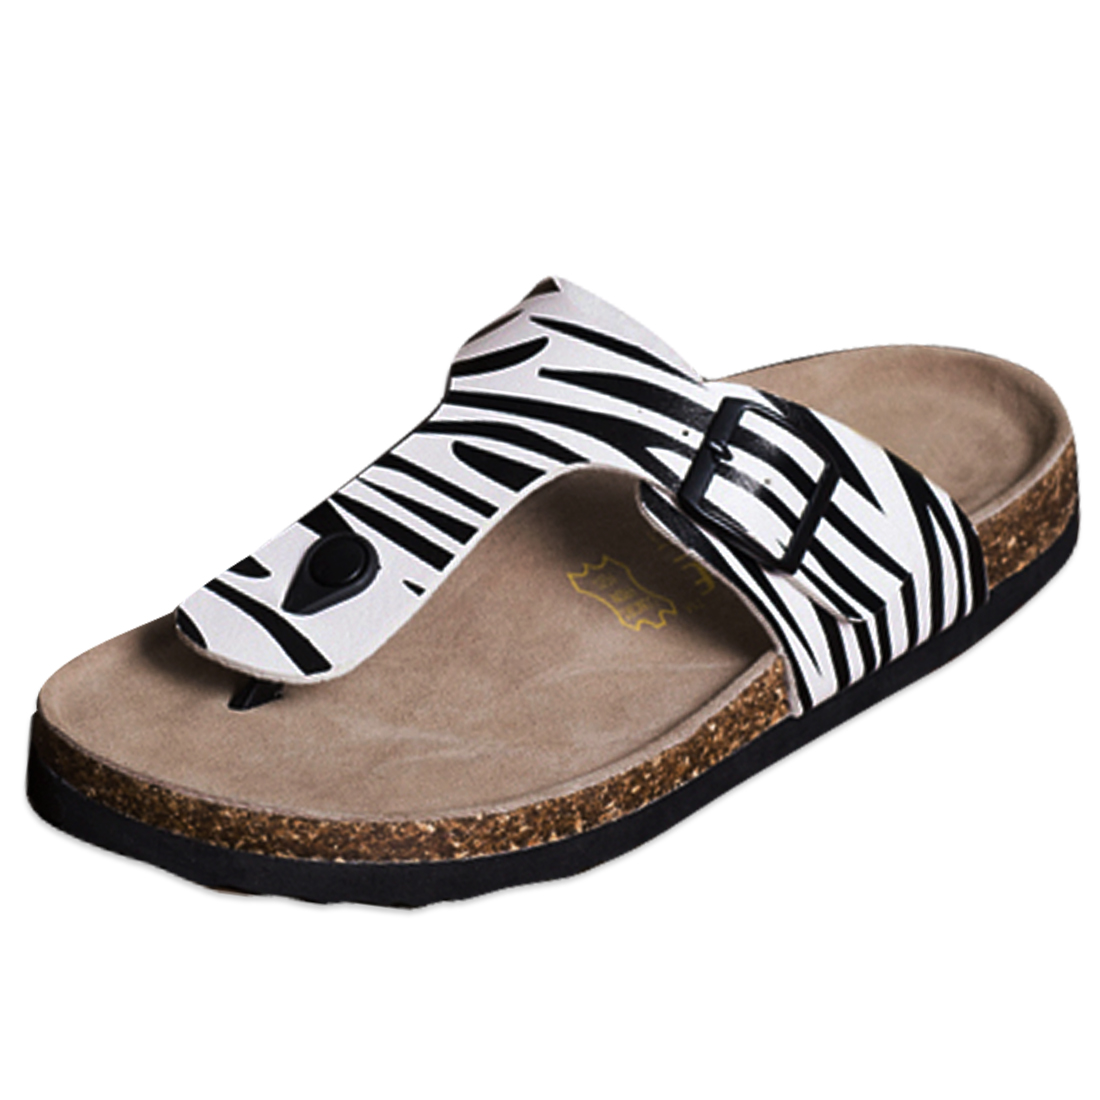 Black White US Size 6.5 Adjustable Strap Beach Style Men Sandal